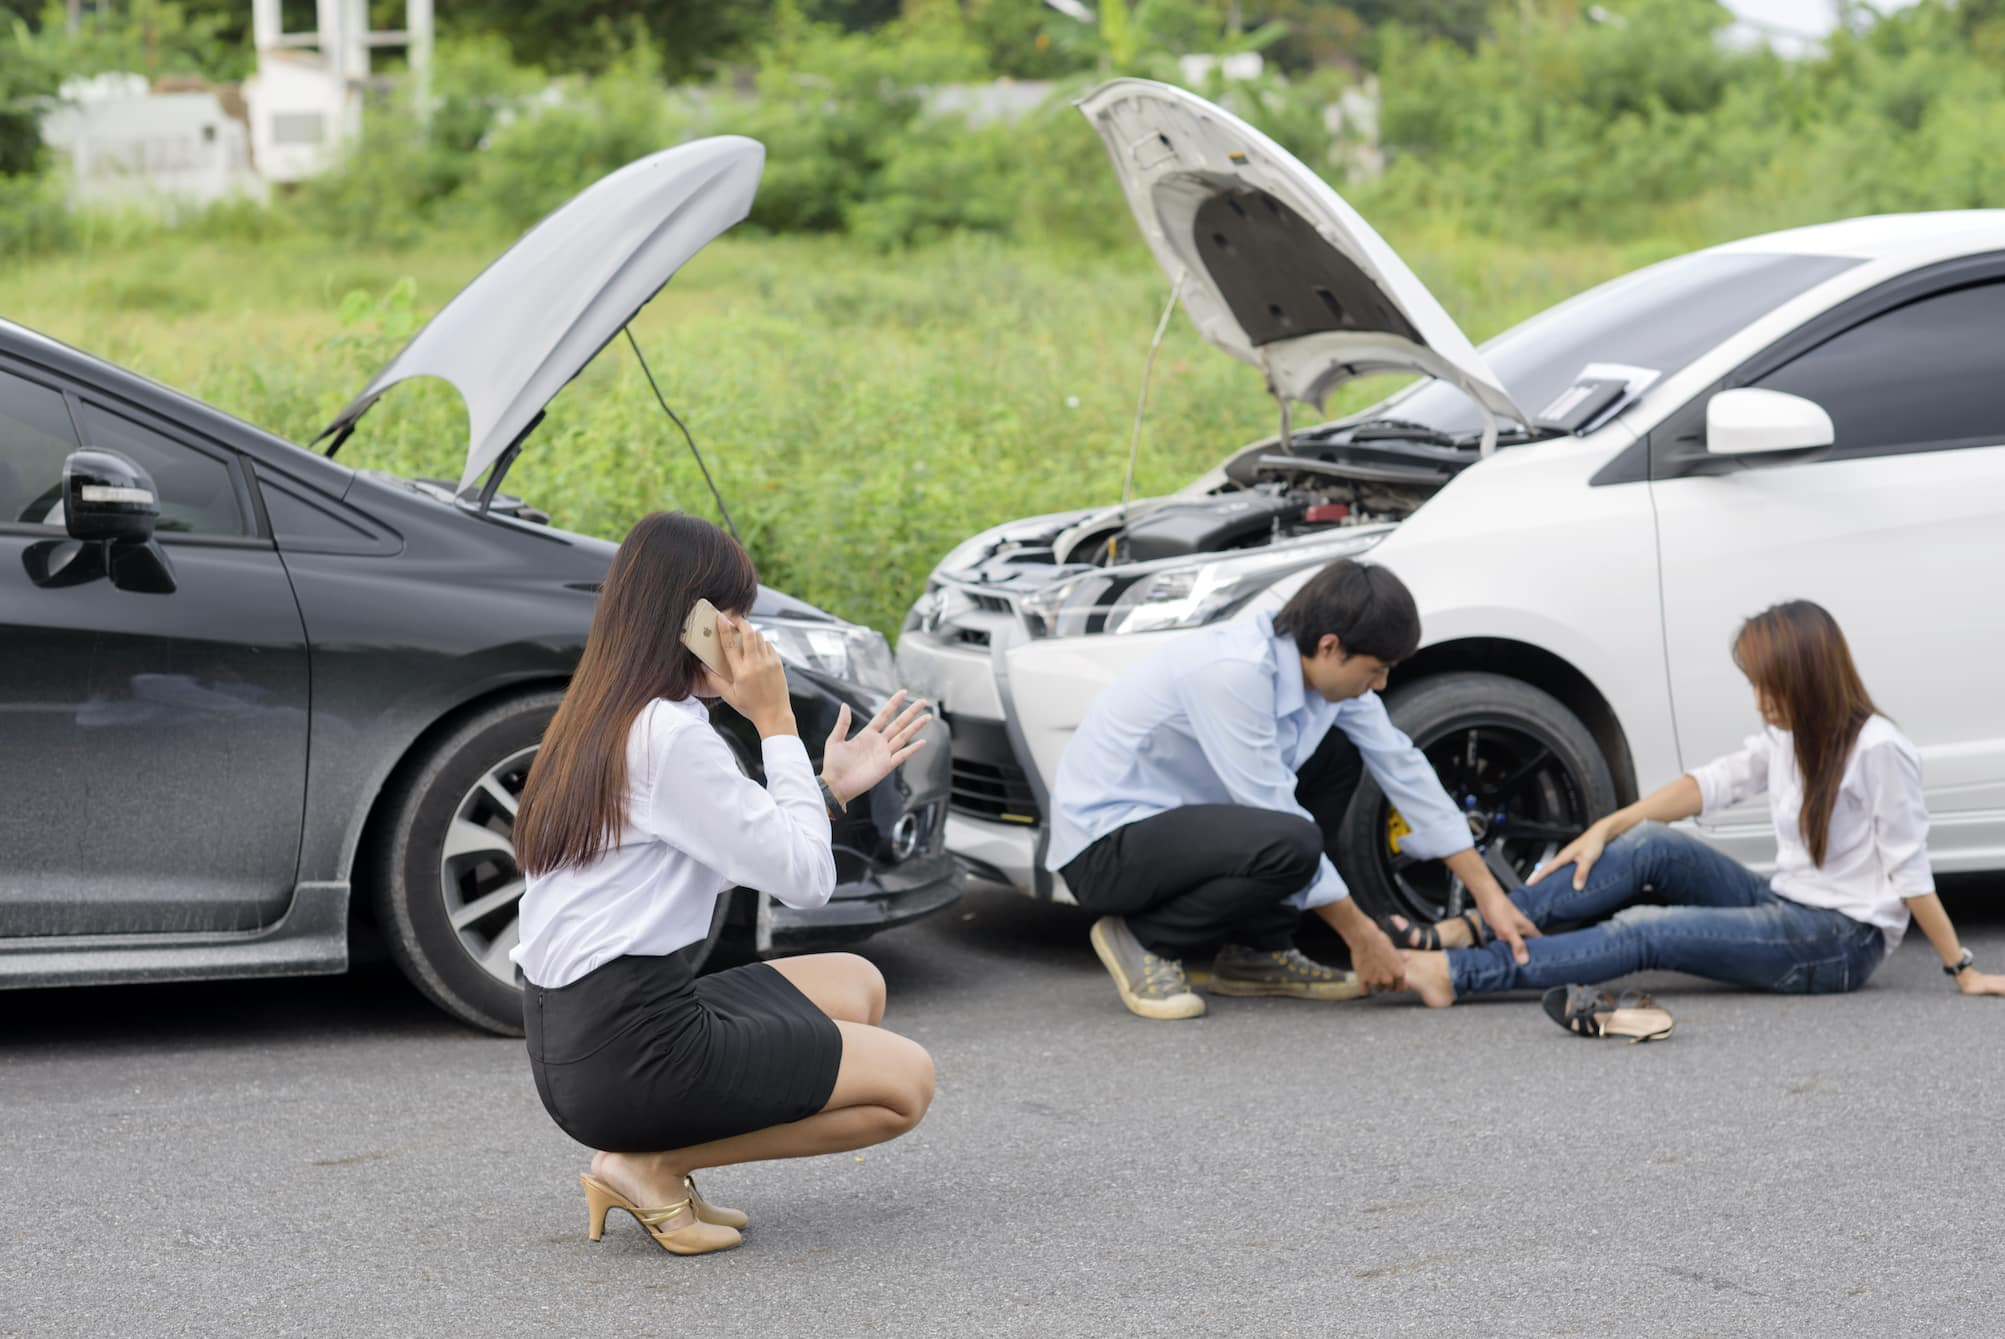 Involved in a Car Accident in Texas? Follow these Steps - At